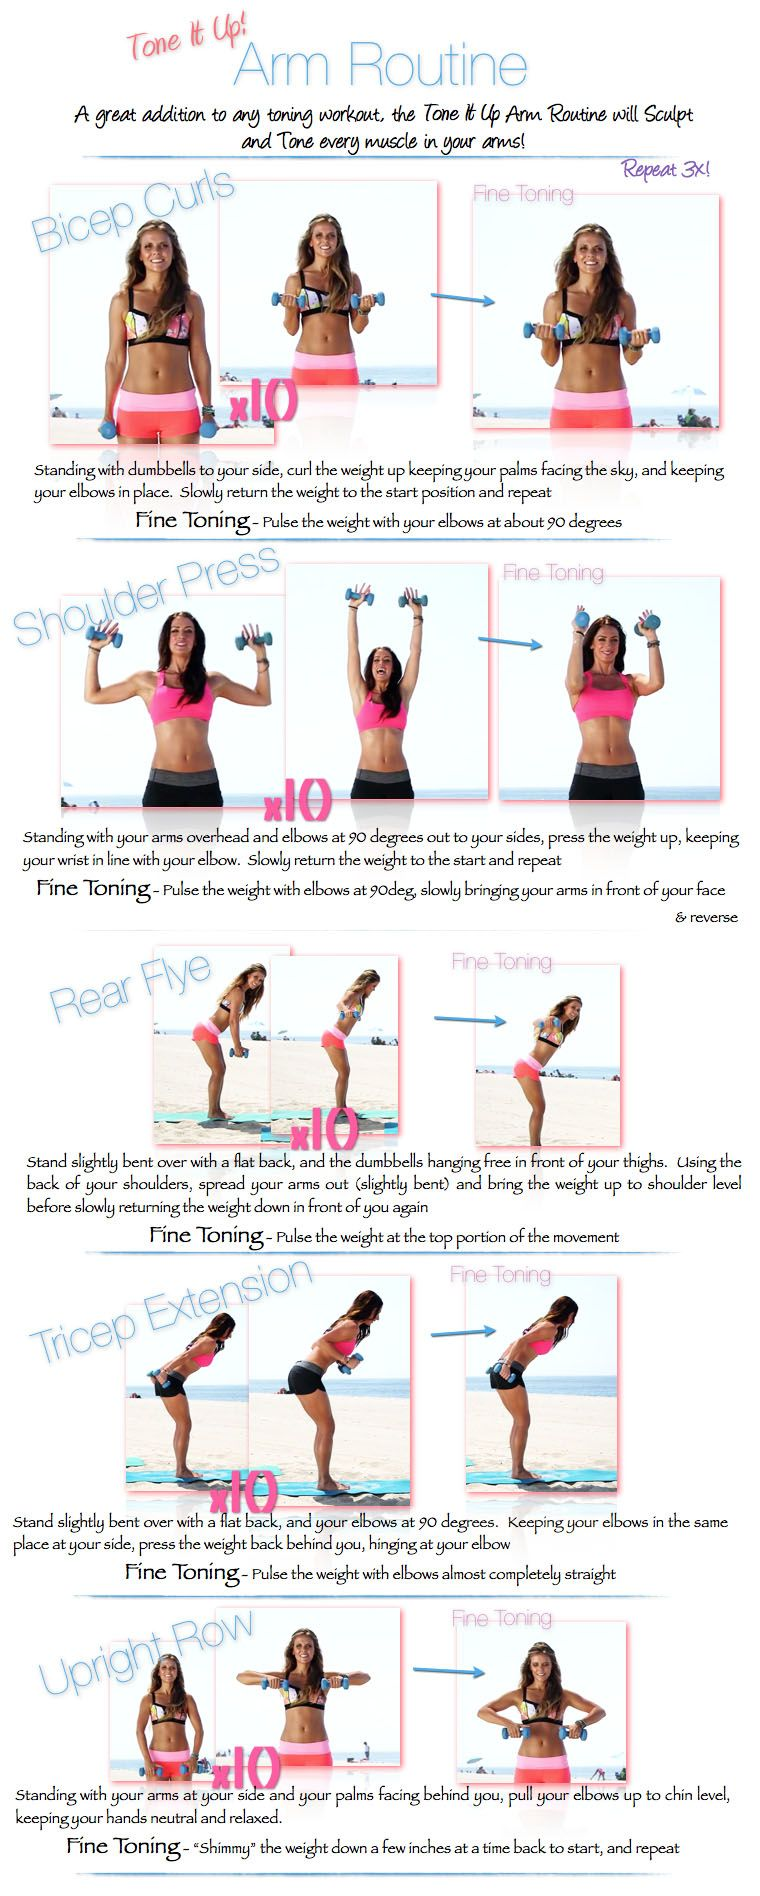 The Tone It Up Arm Routine. Going to give this a go after my run today.